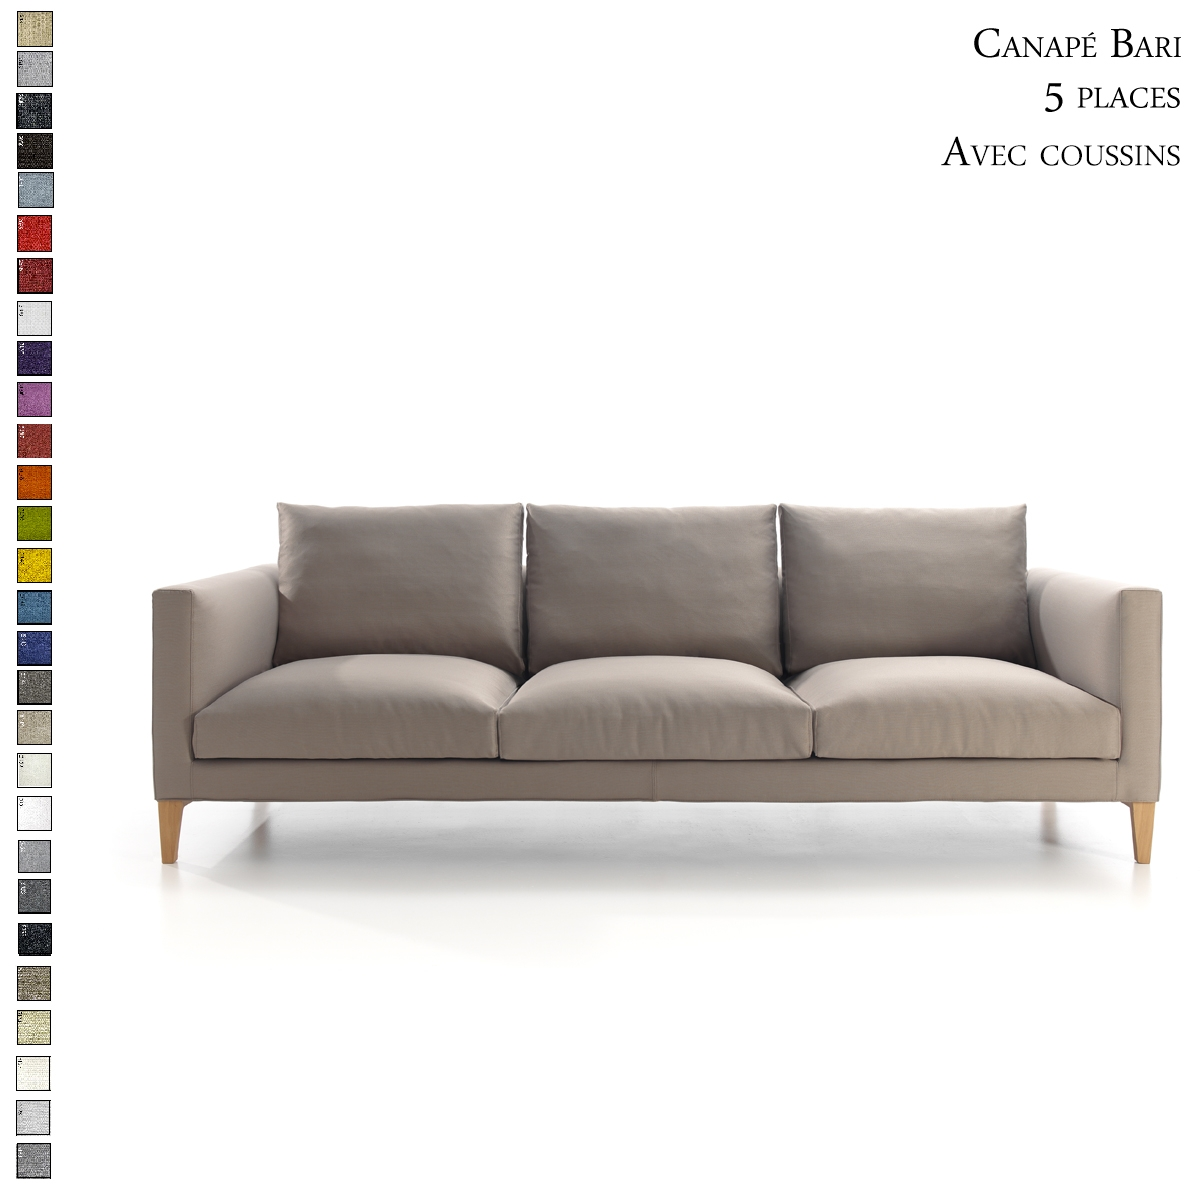 Canapé Assise Bultex Coussin Assise Canape